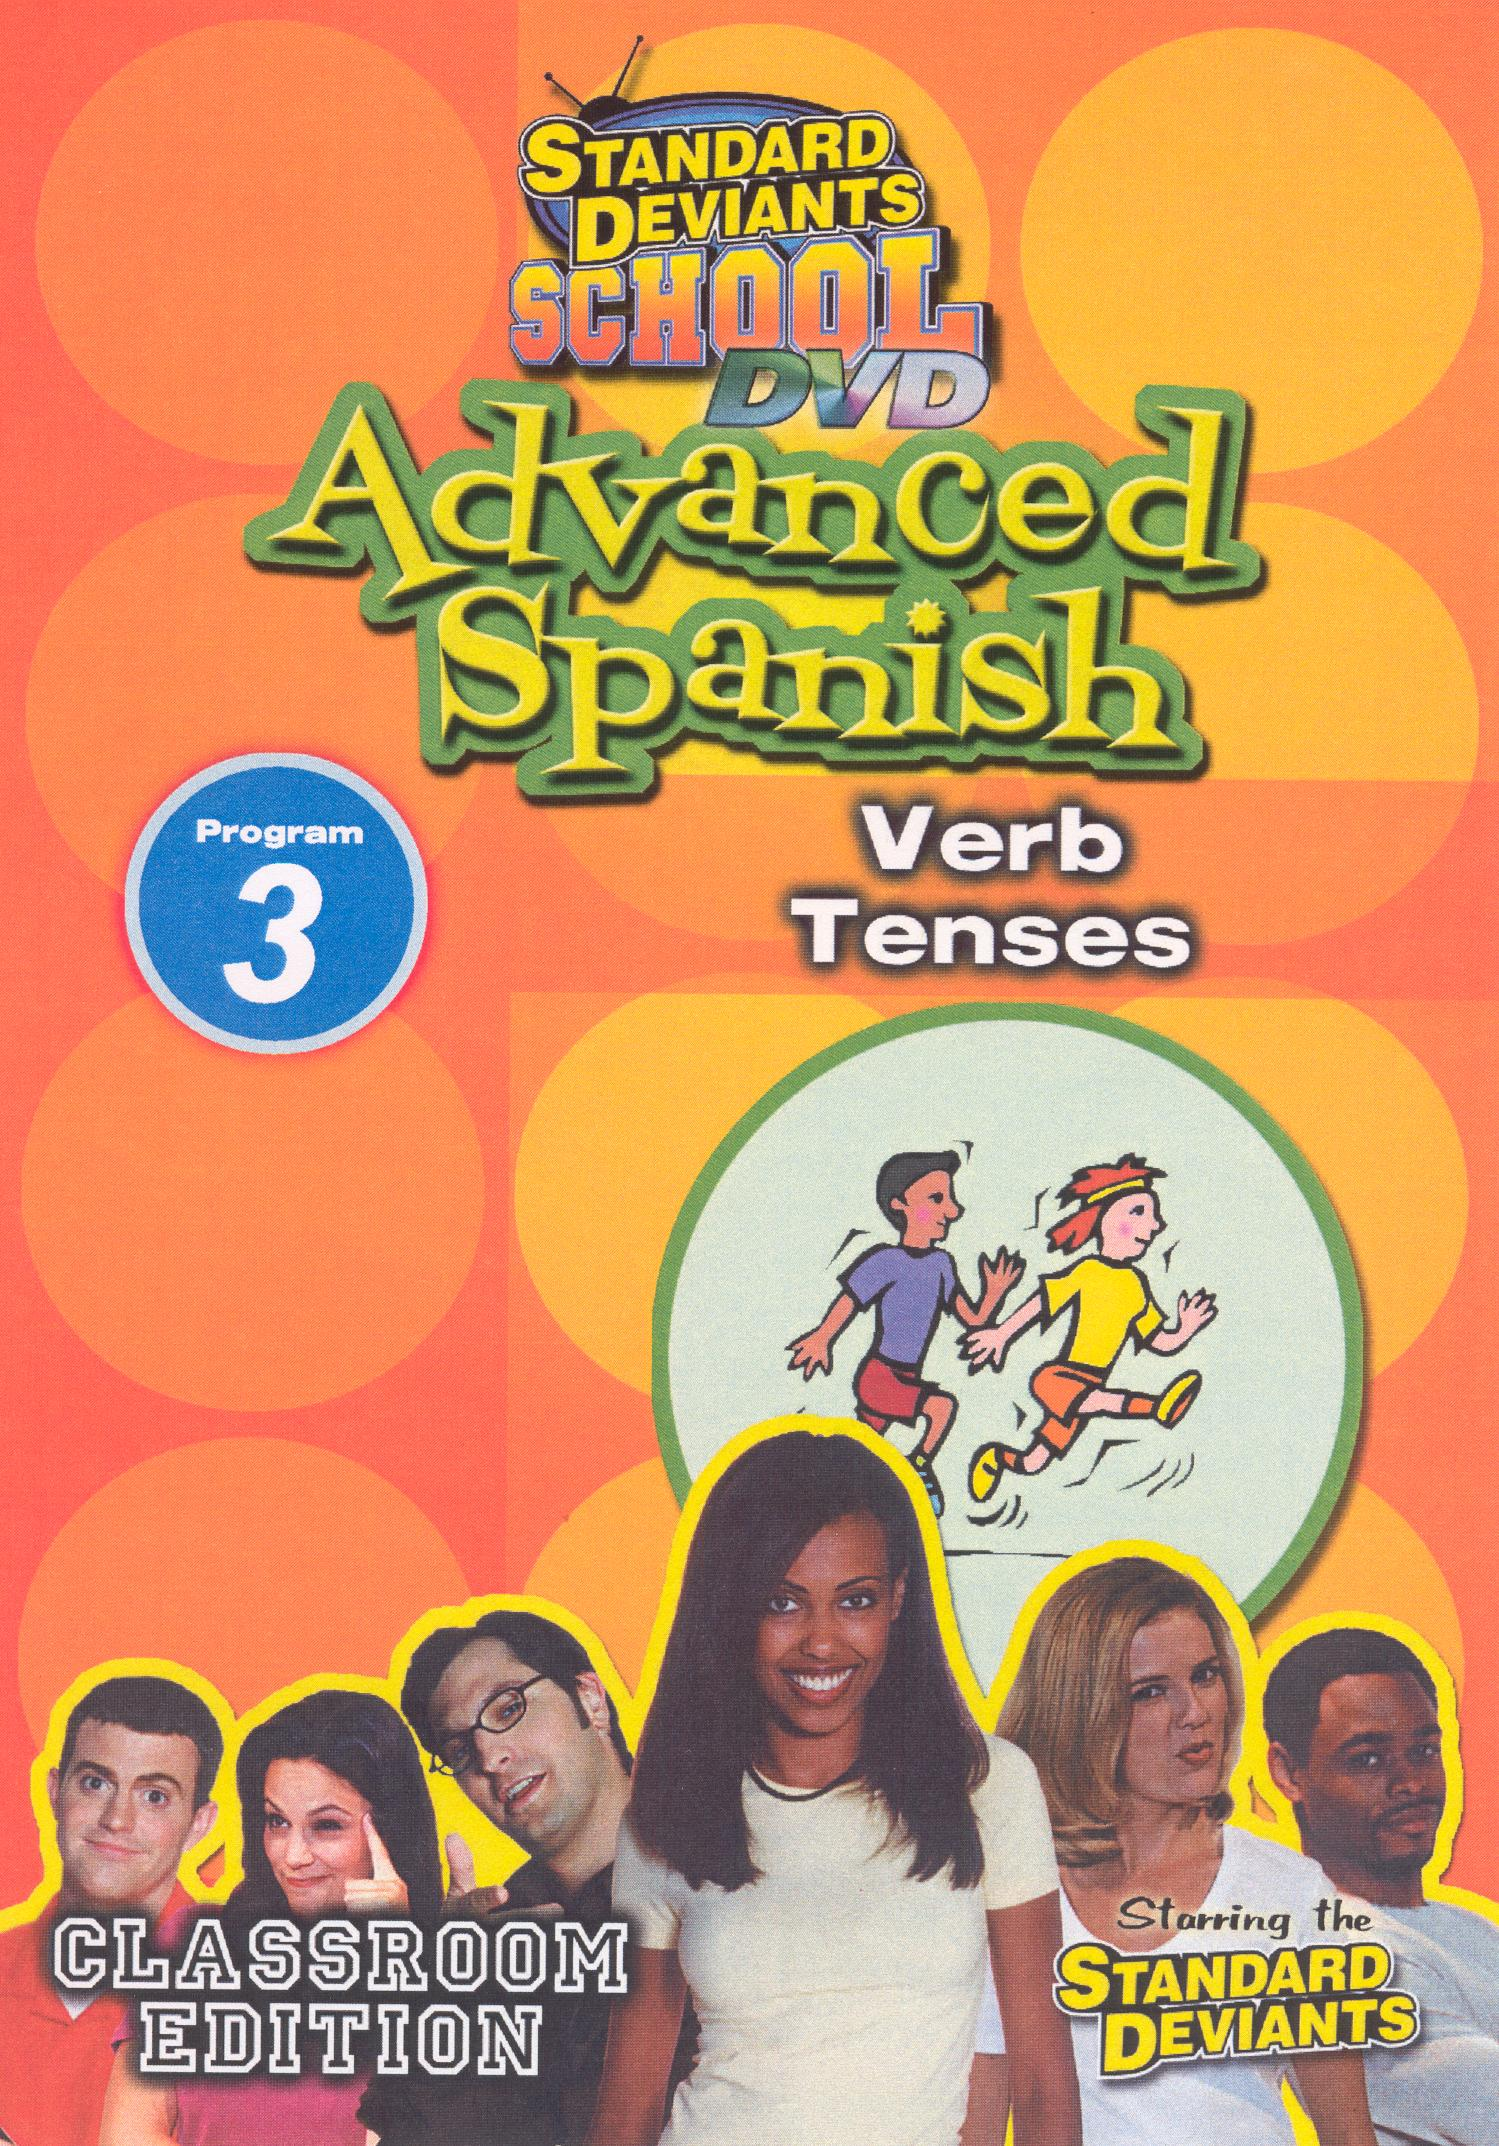 Standard Deviants School: Advanced Spanish, Program 3